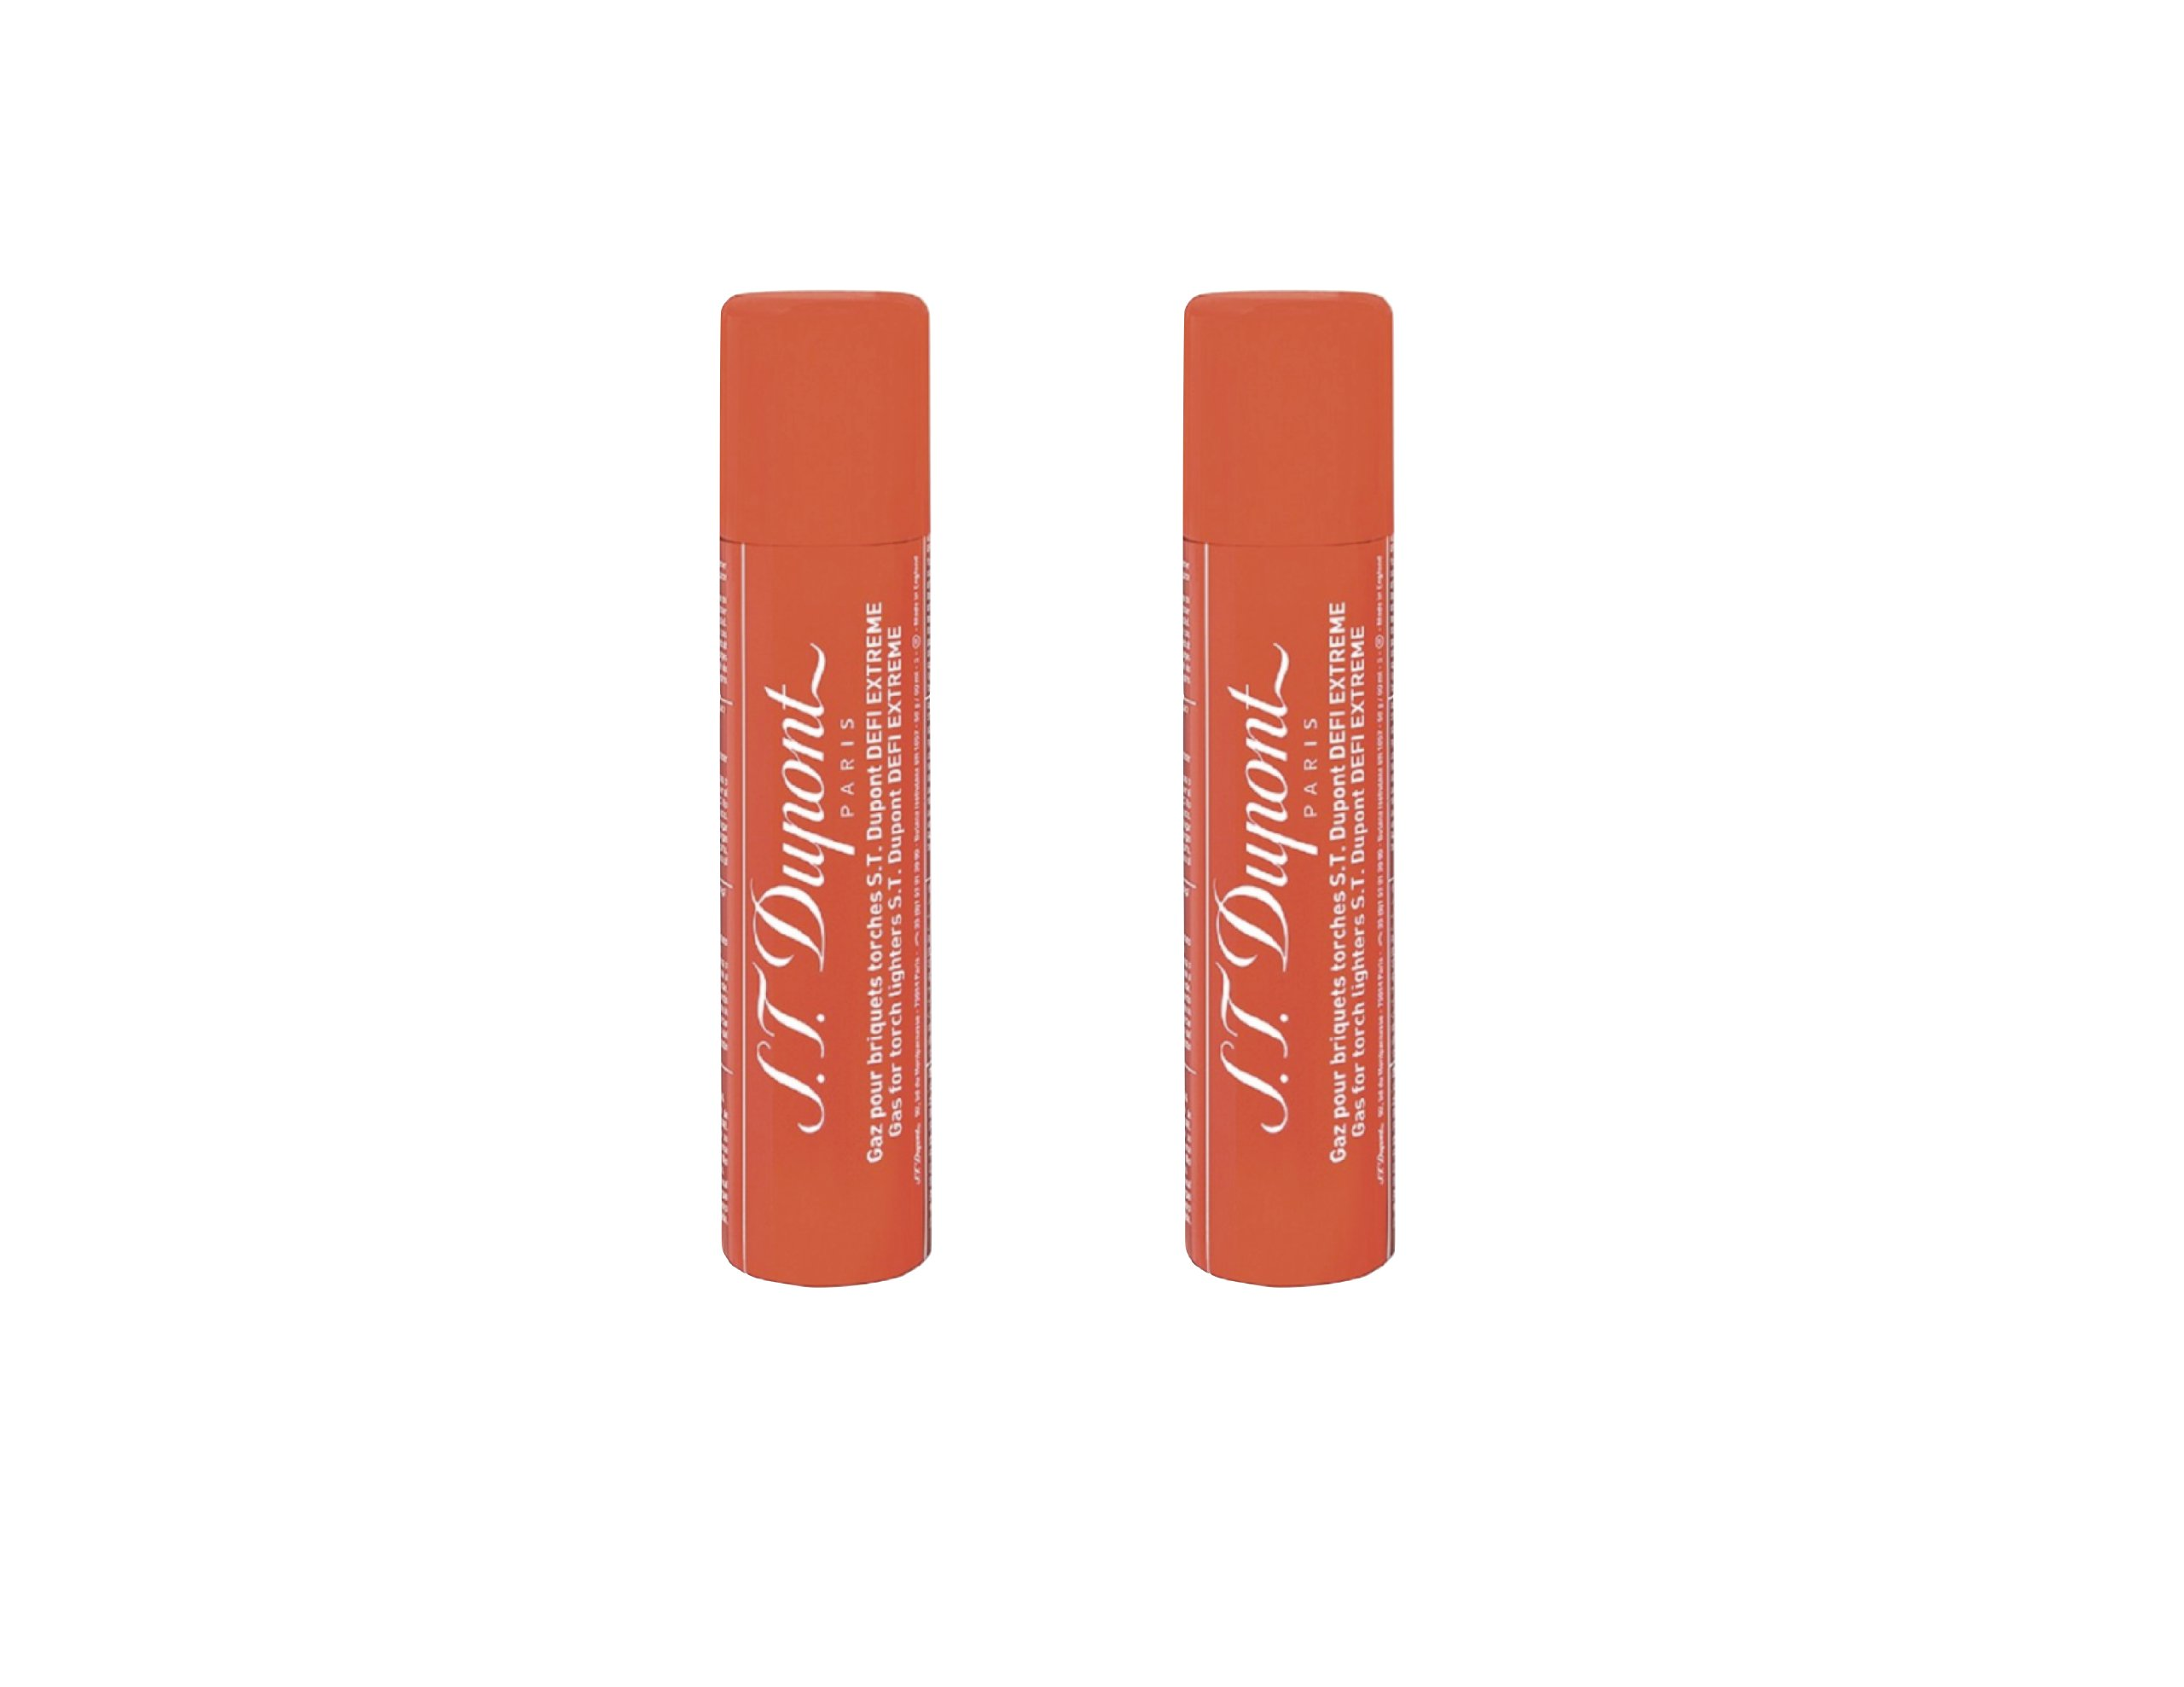 S.T. Dupont Defi Extreme Butane - 2 Pack by S.T. Dupont